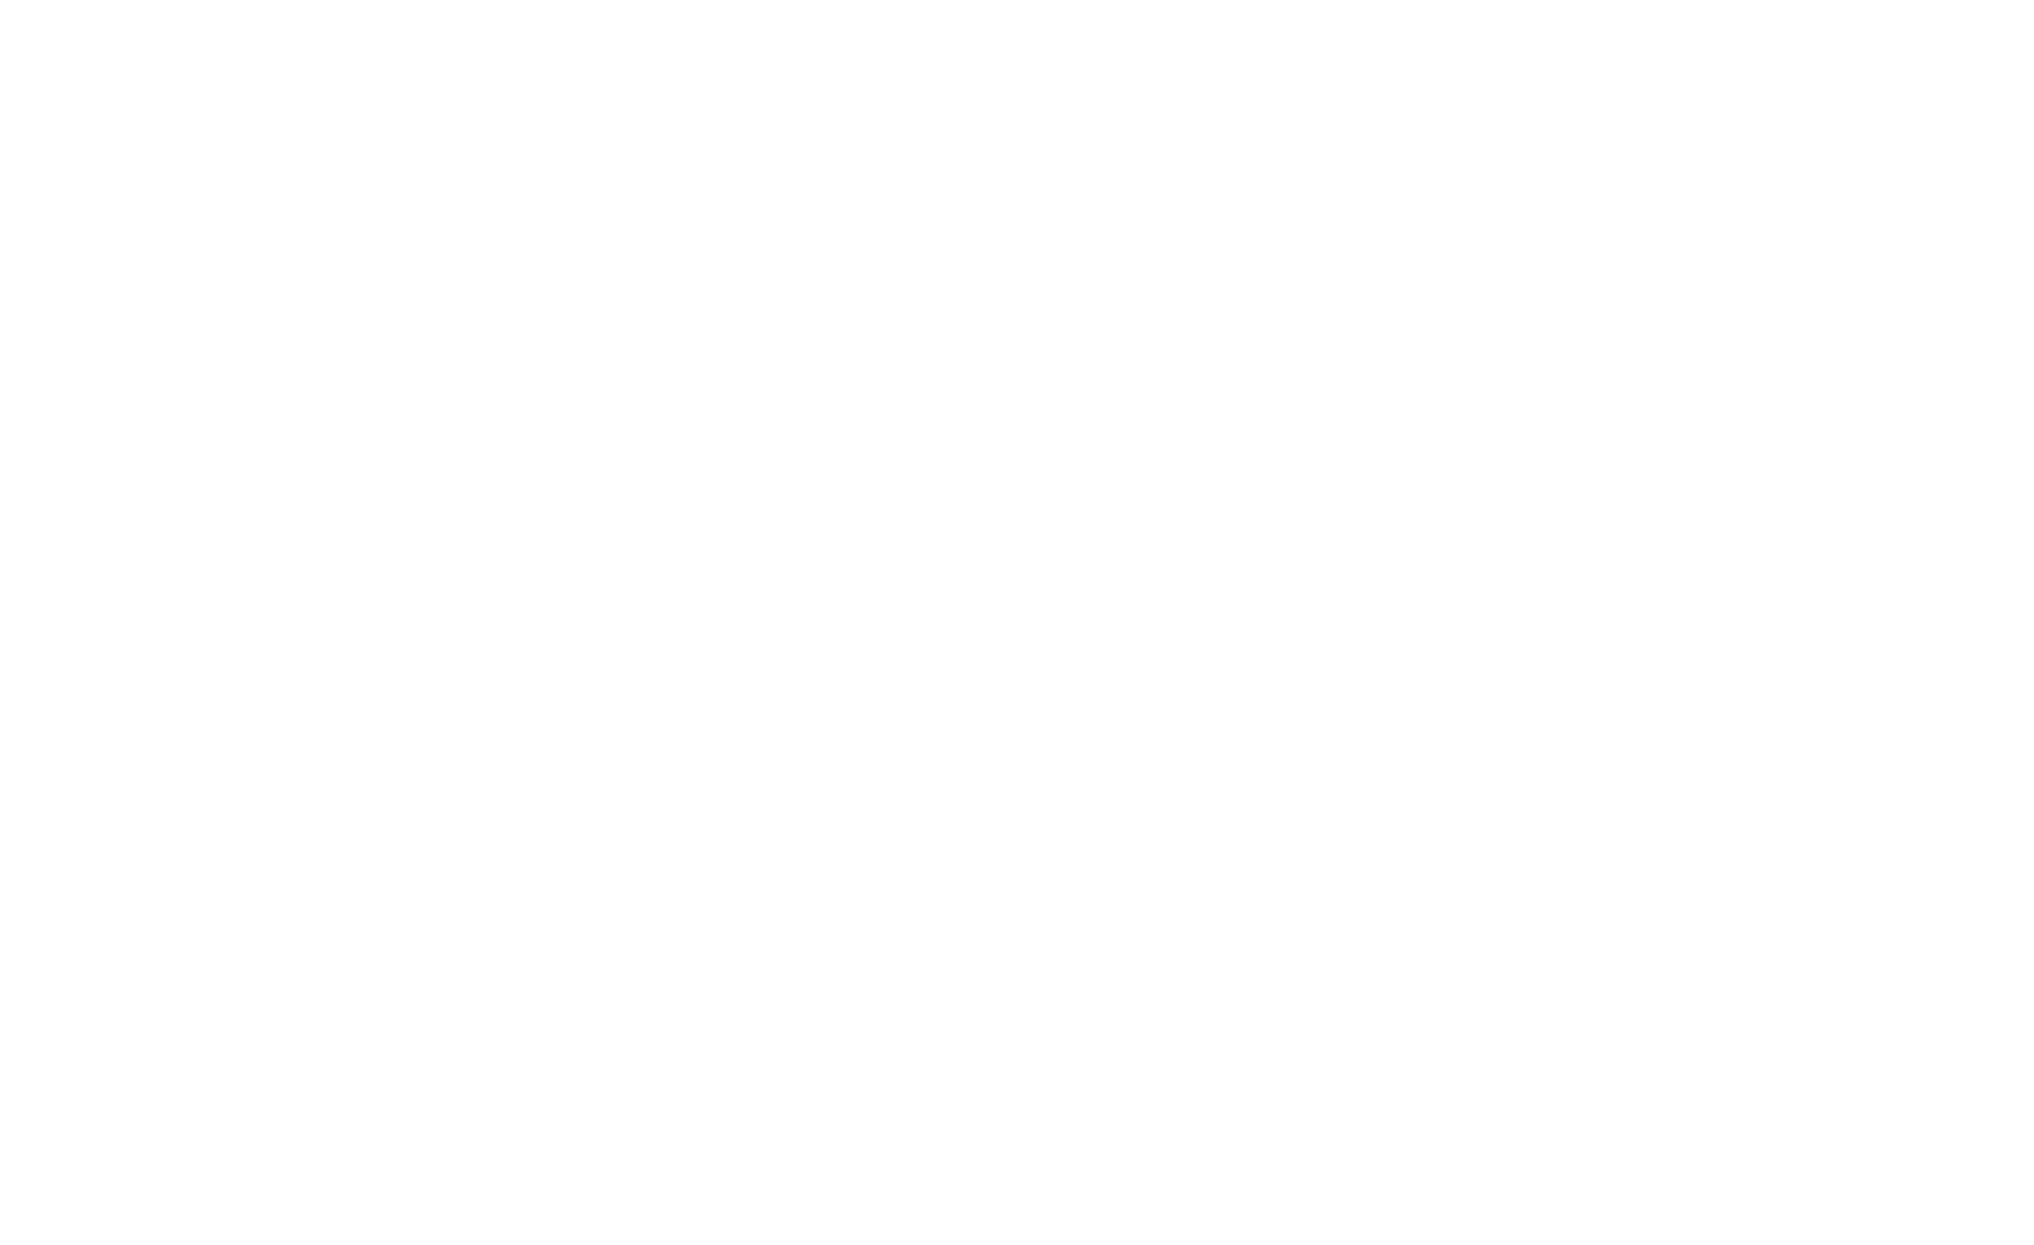 The Schooling Society